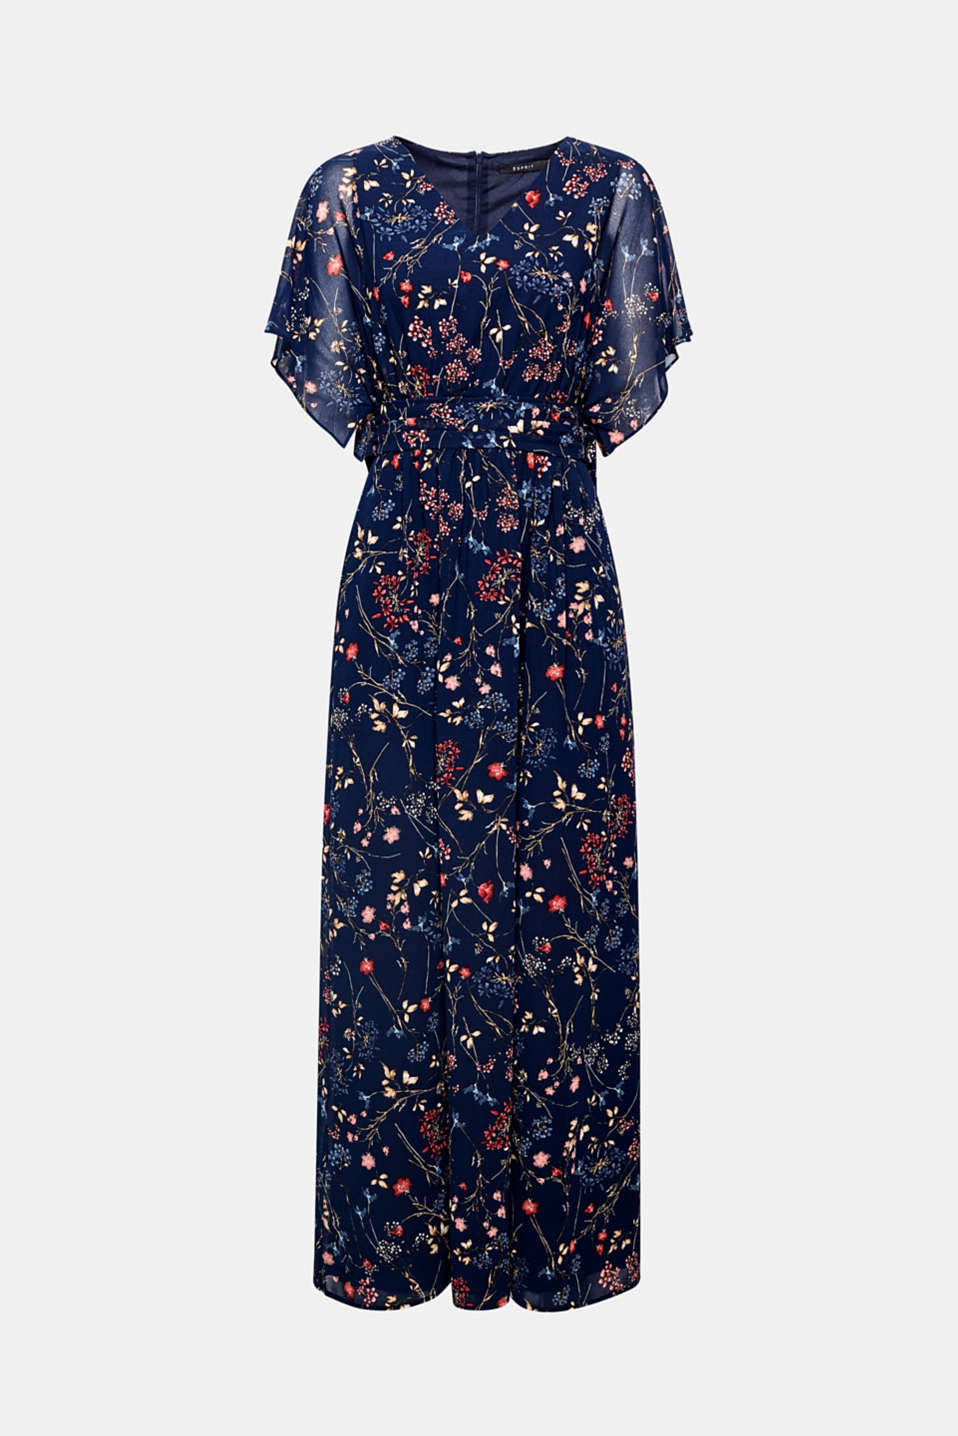 Colourful flowers on dainty chiffon give this maxi dress with transparent cap sleeves a feminine, trendy fairytale look!